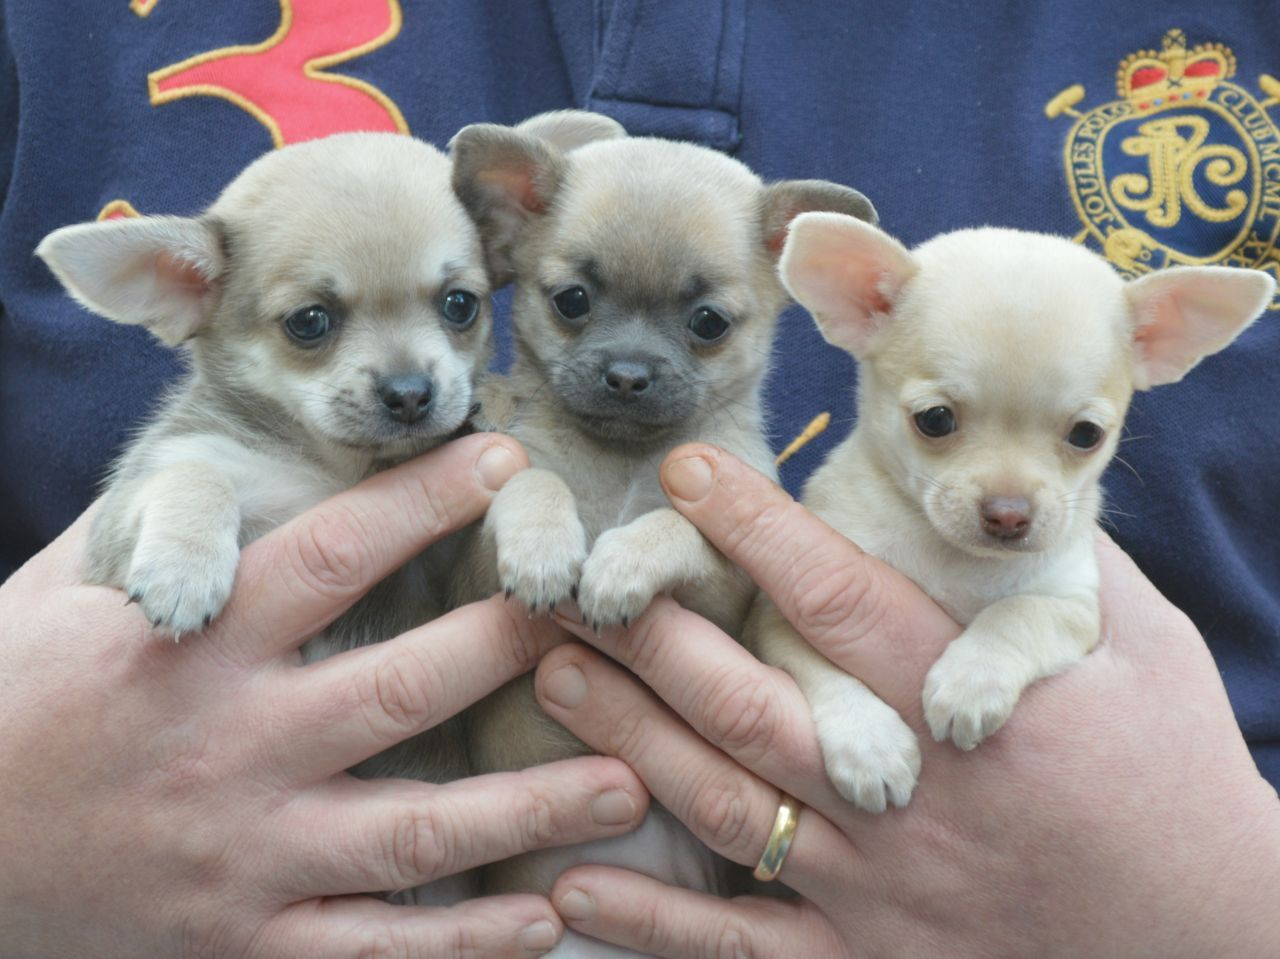 Binero Webbhotell Vanligast Pa Webben Teacup Chihuahua Puppies Chihuahua Puppies For Sale Chihuahua Puppies